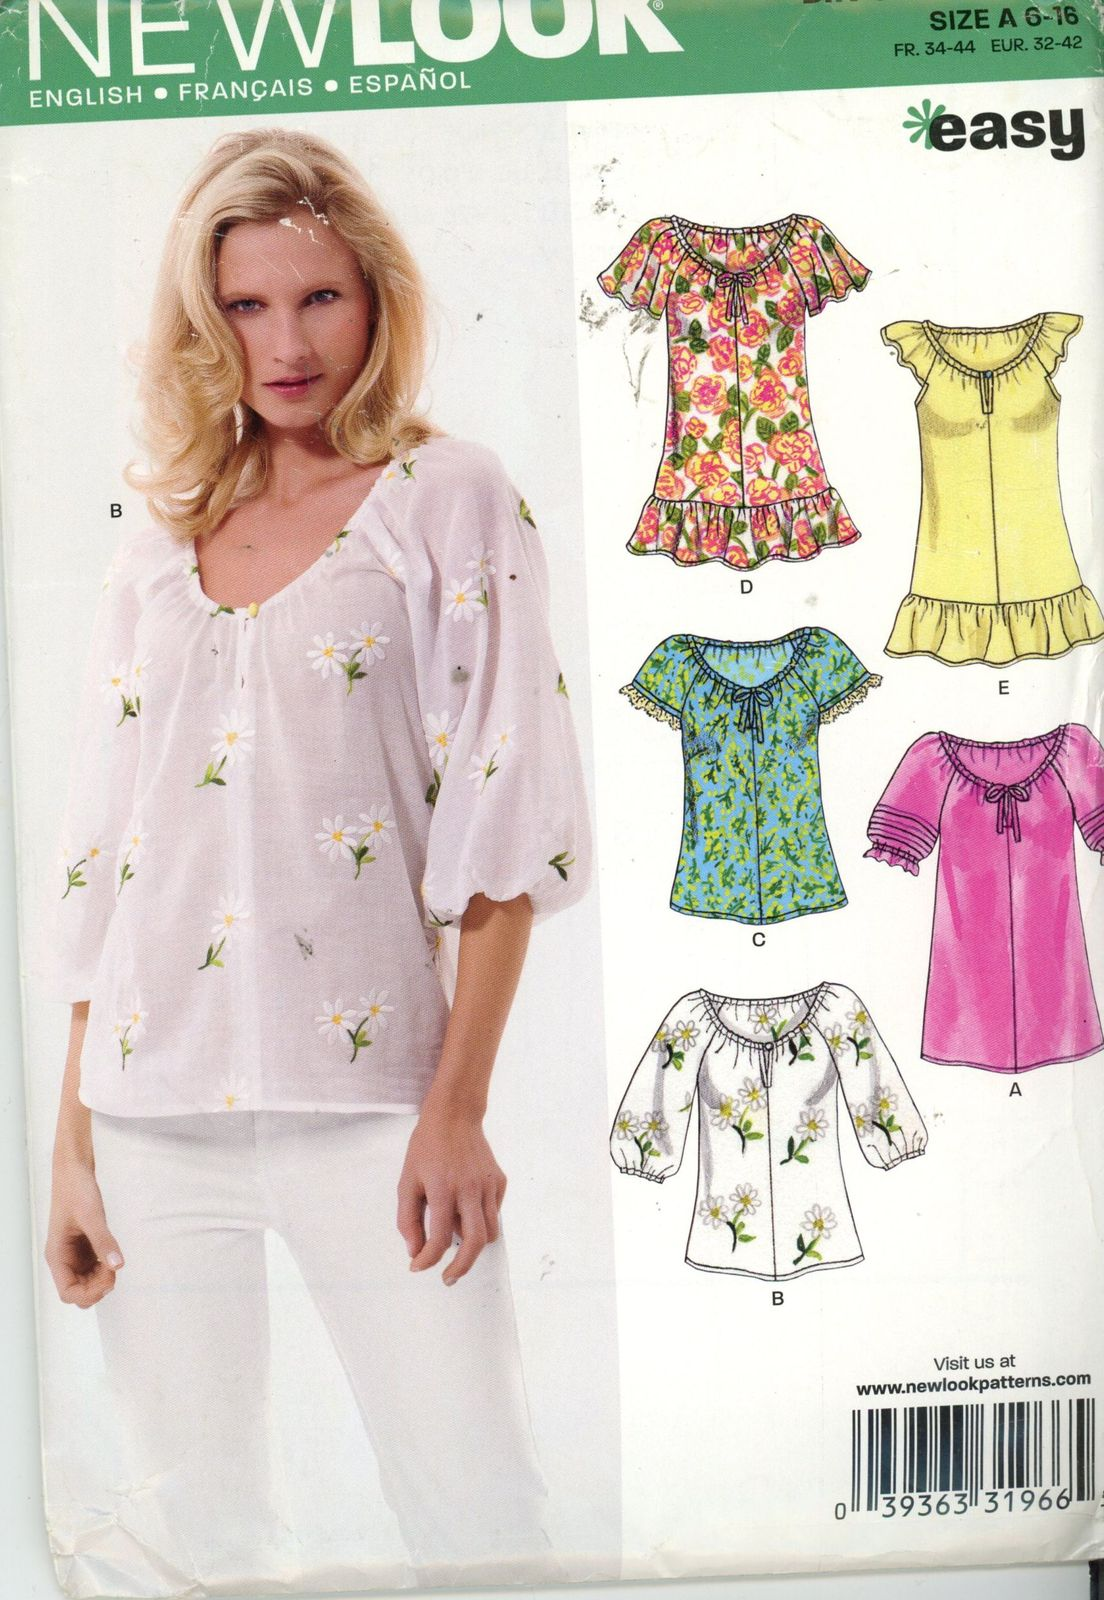 New Look 6809 Sewing Pattern: 1 listing